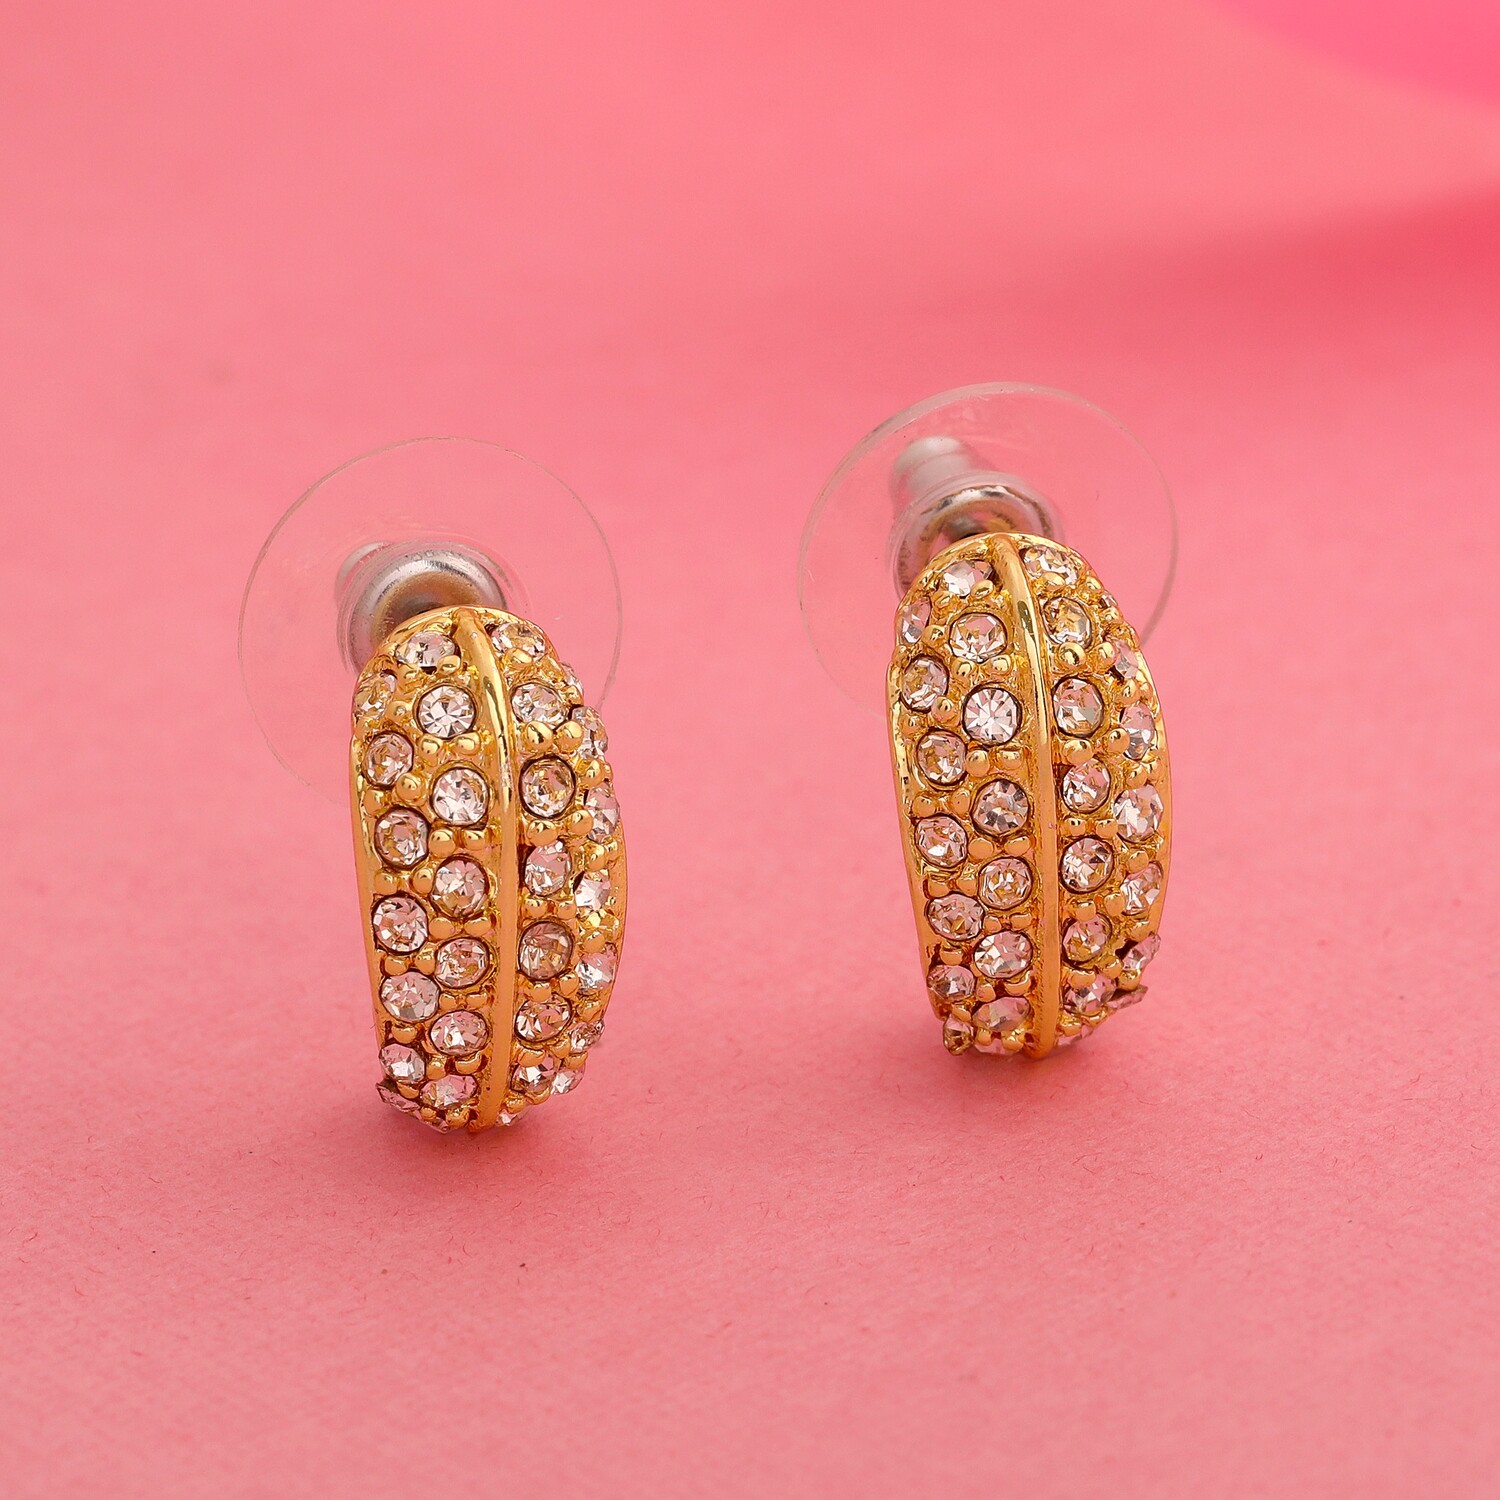 Estele 24Kt Gold Plated Candy Earring with White Crystals